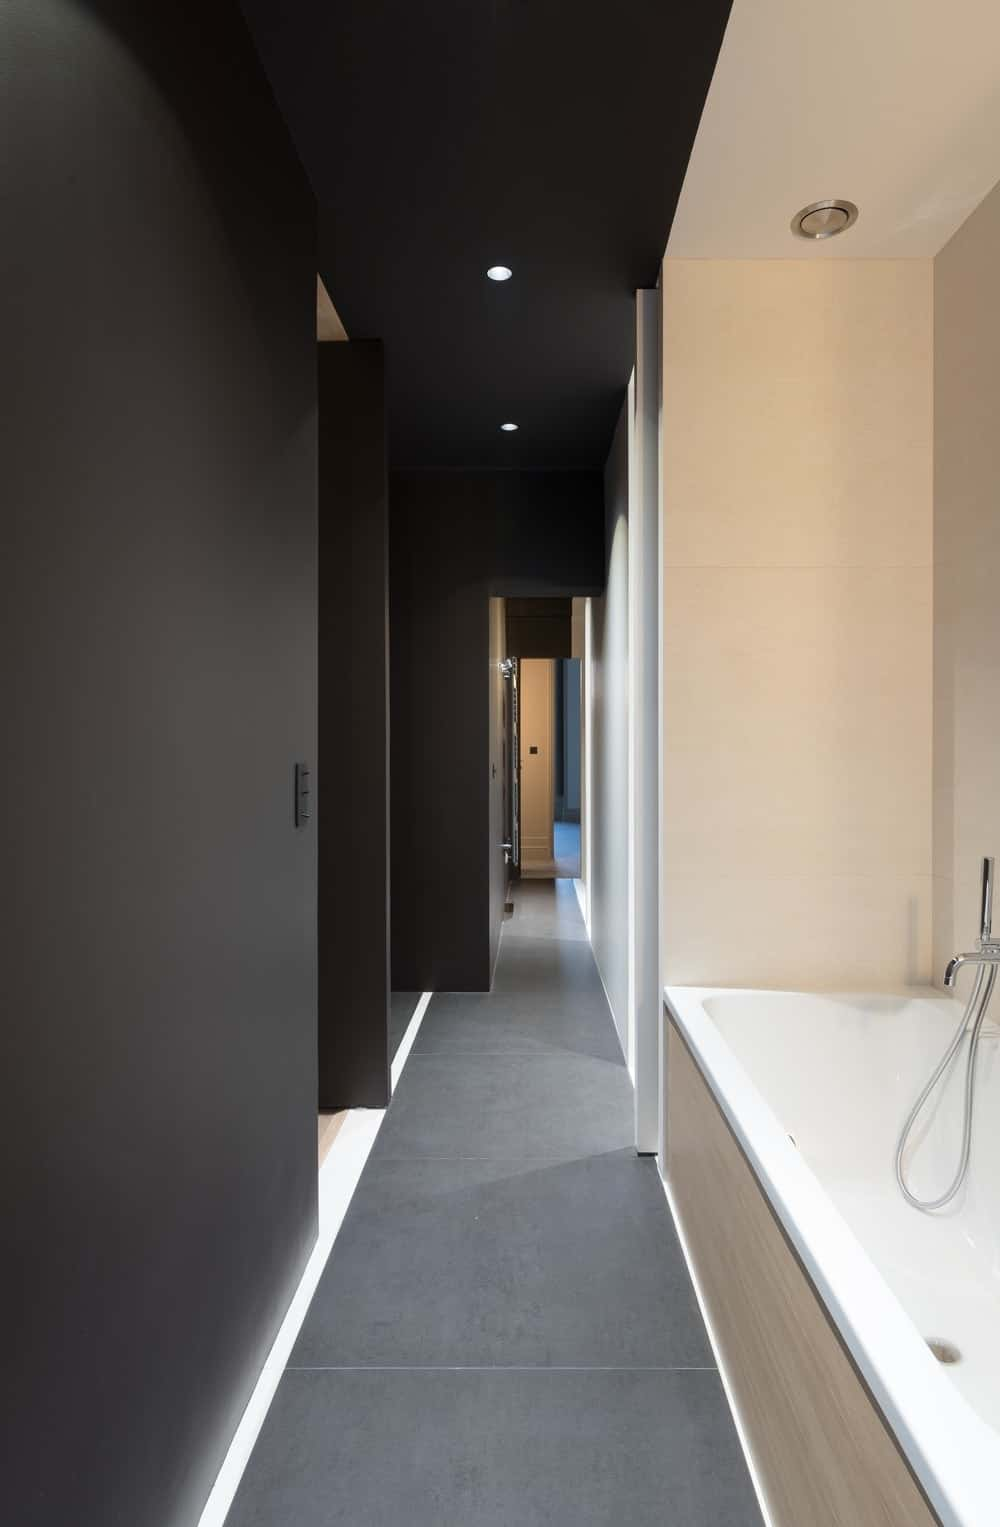 Contemporary bathroom with a corner tub lighted by recessed ceiling lights. Photo credit: Mickaël Martins Afonso